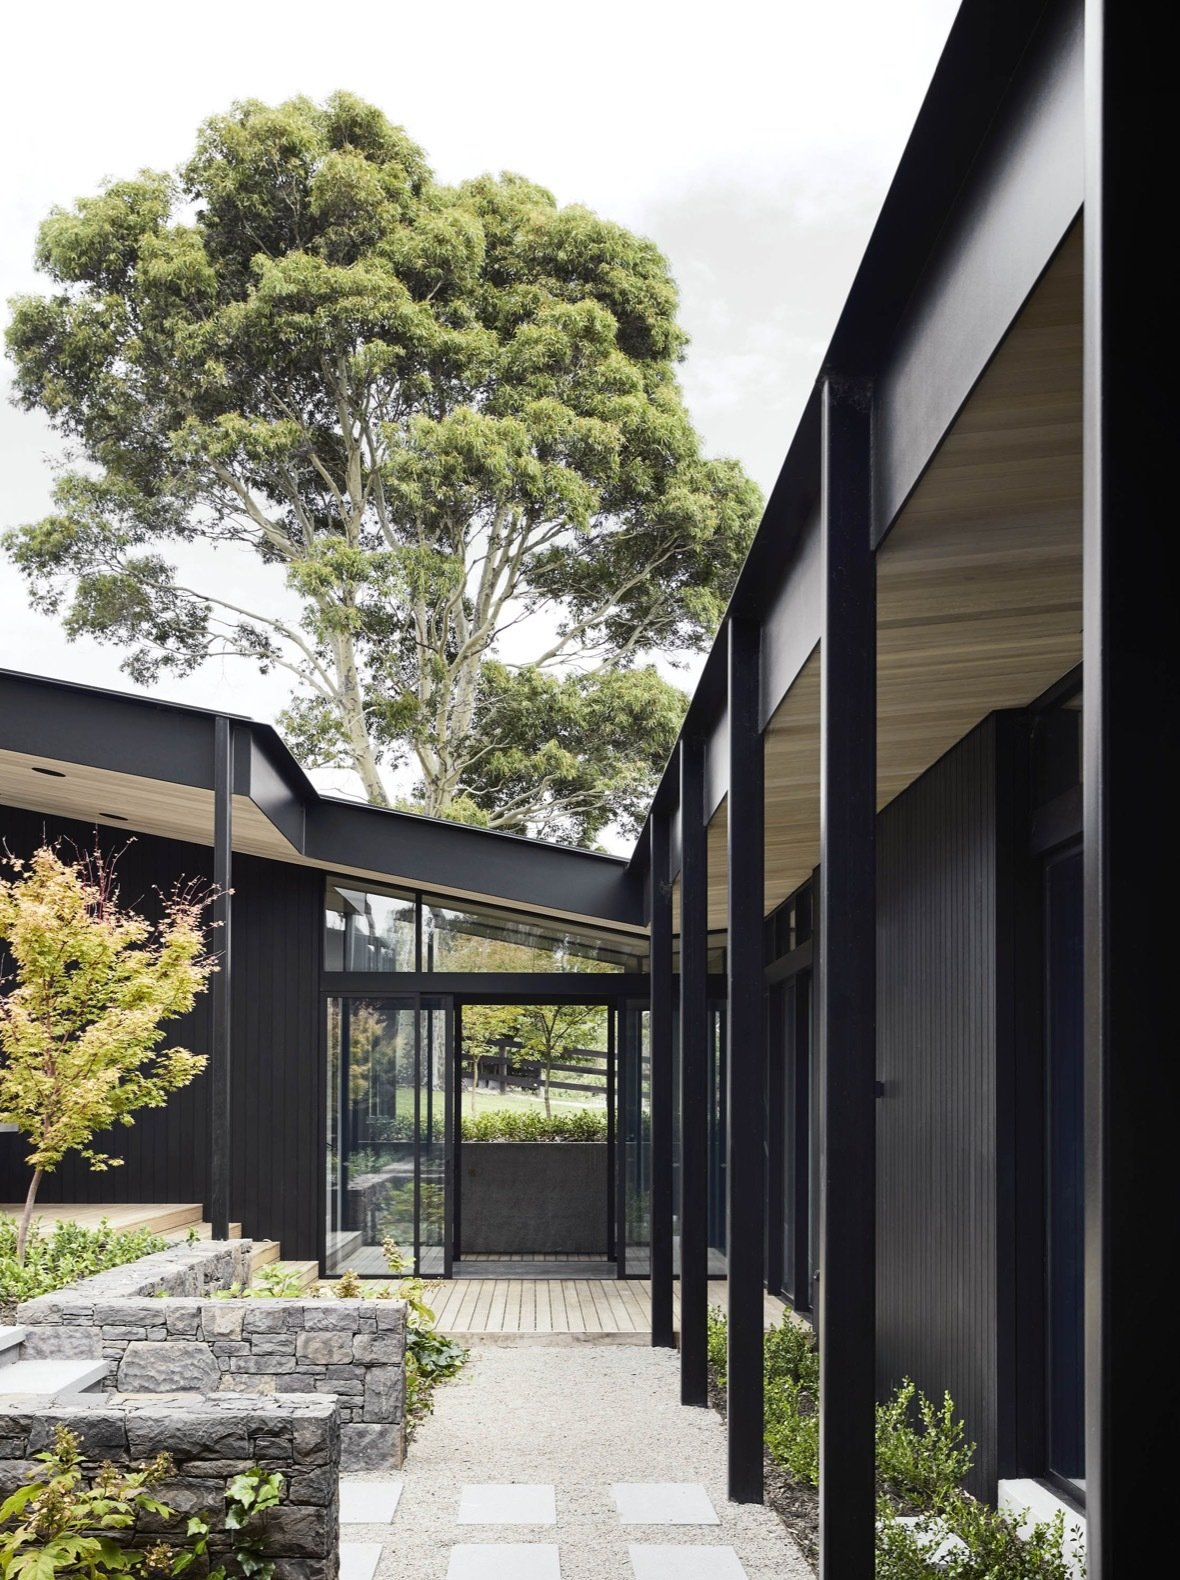 Red Hill Farm House blackened timber pavilions